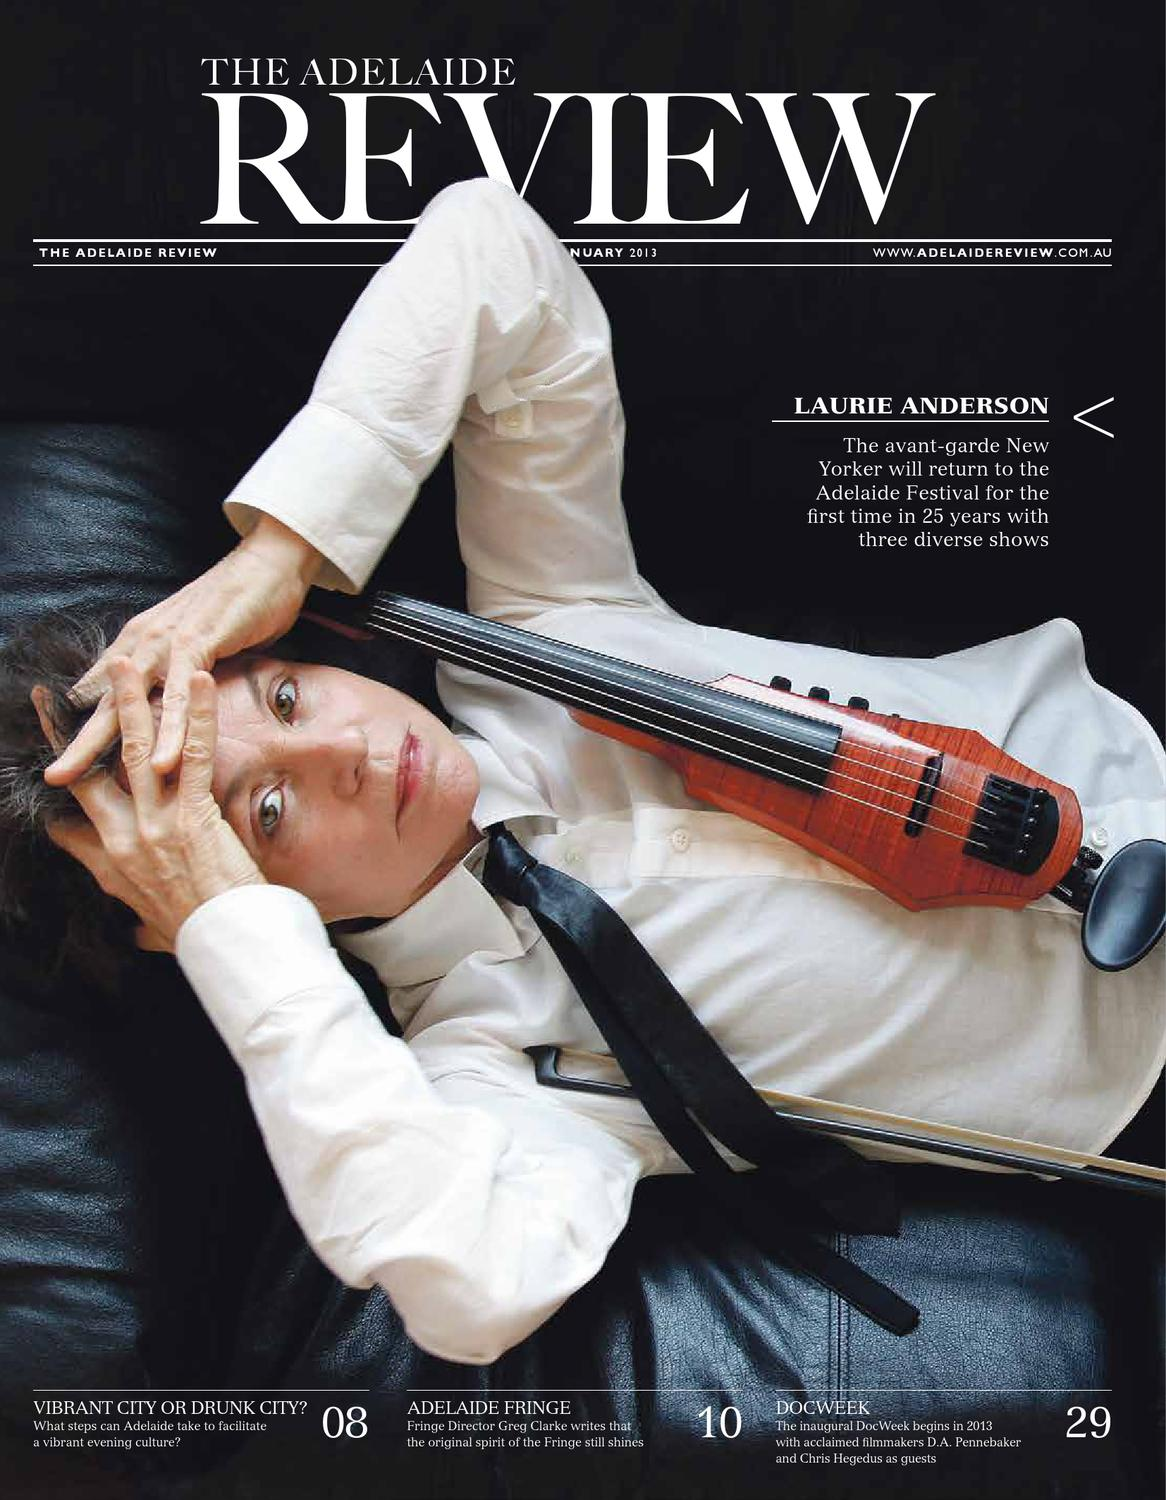 The adelaide review january 2013 by the adelaide review issuu malvernweather Image collections